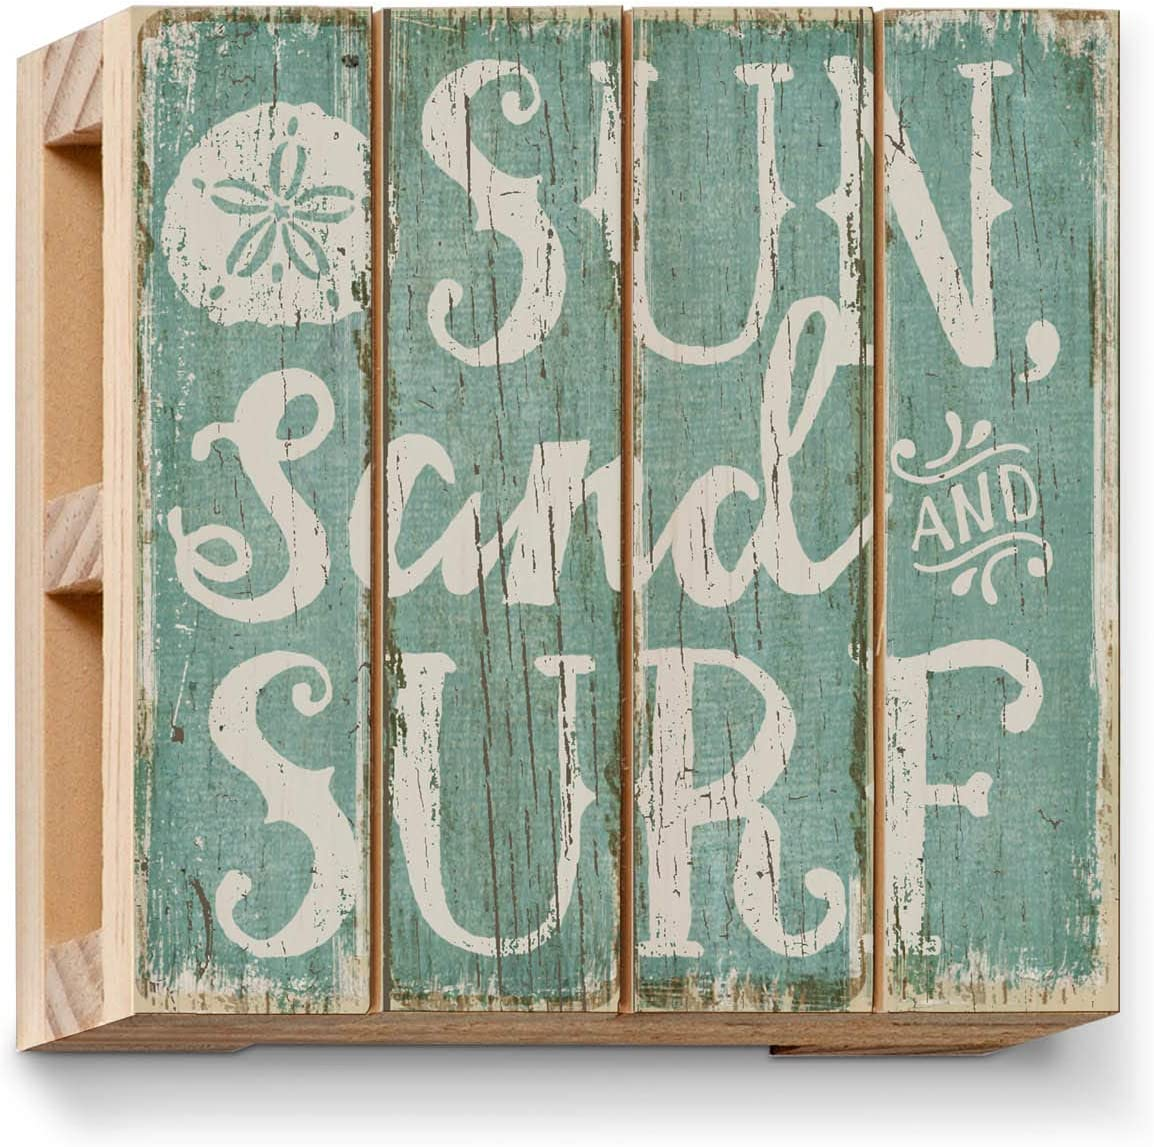 Highland Home Sun Sand Surf Single Pallet Wood Coaster 4 inch by 4 inch Square